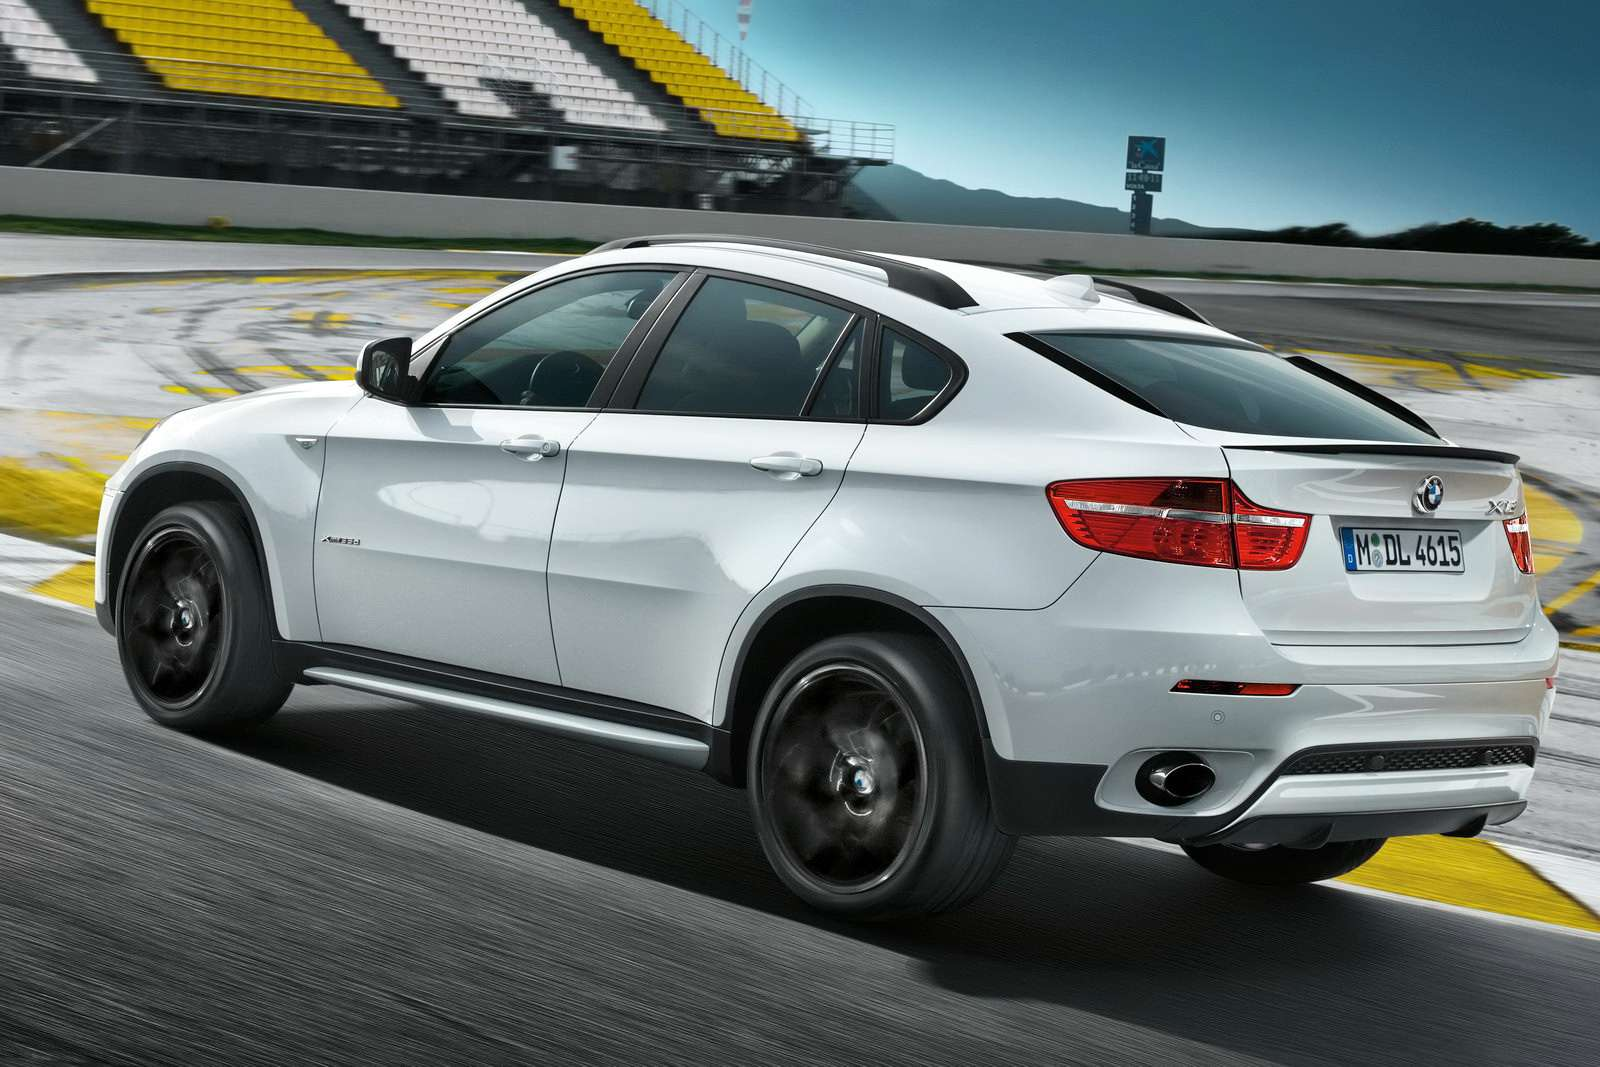 BMW X6 Performance luty 2010